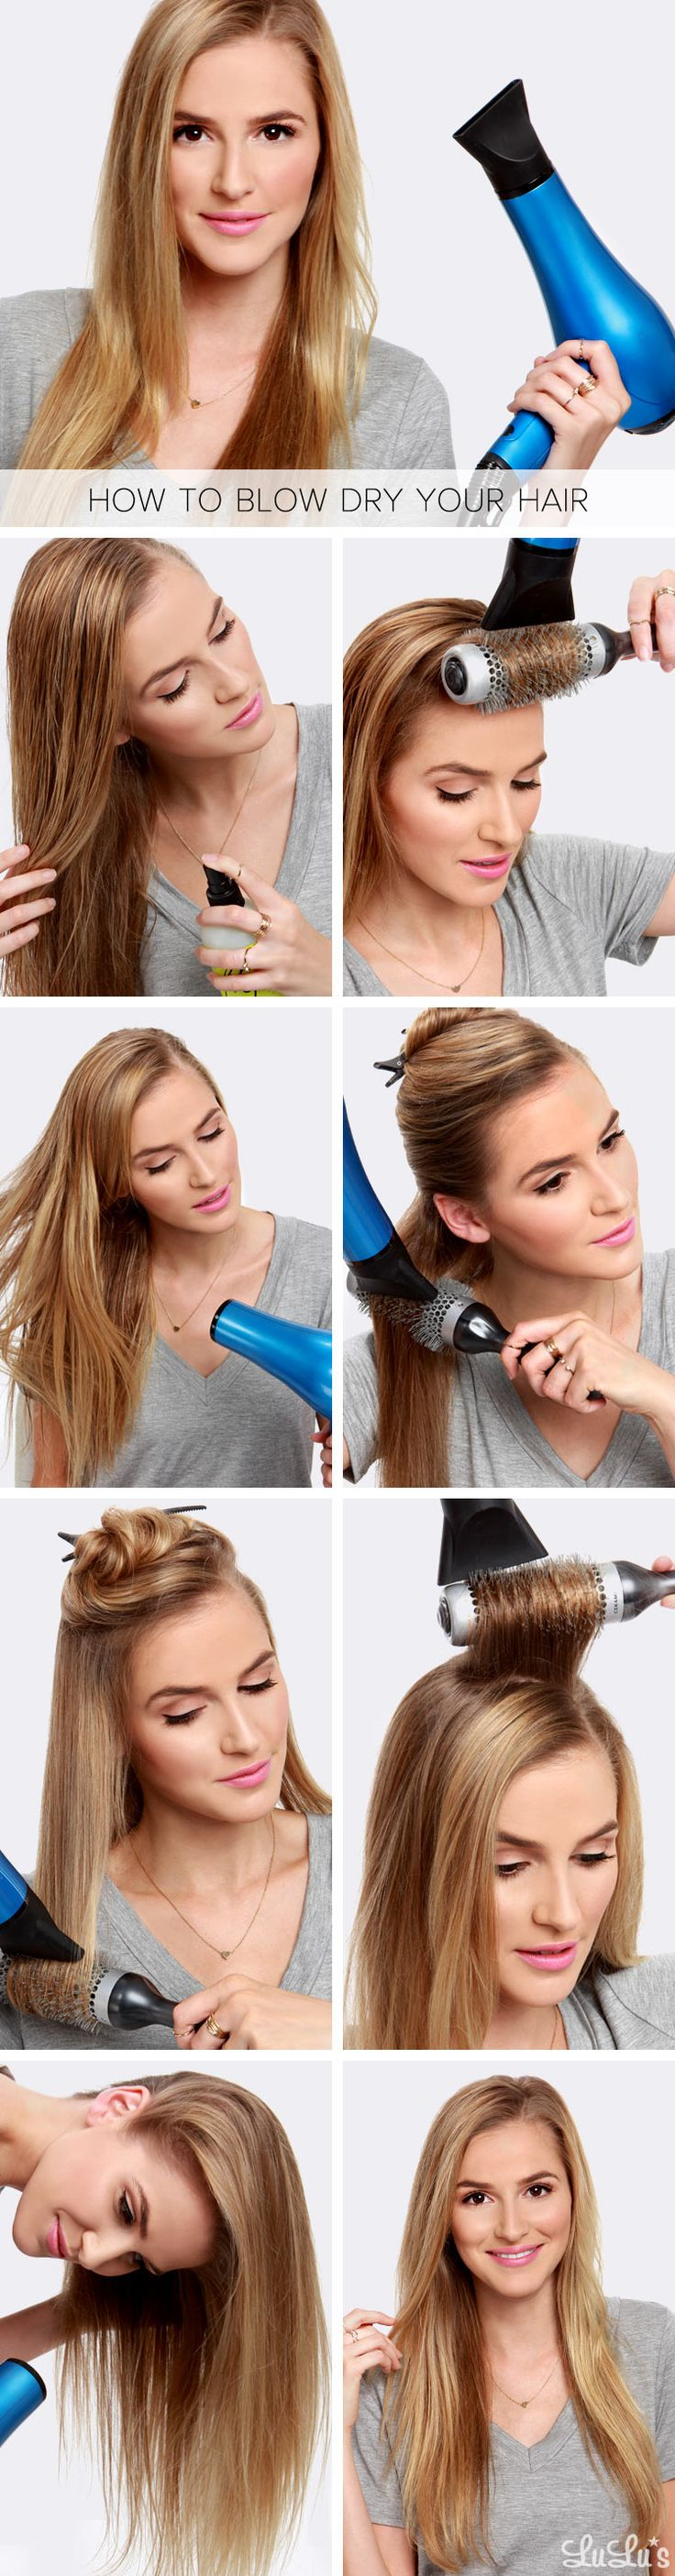 best 25+ blow drying hair ideas on pinterest | blow drying tips